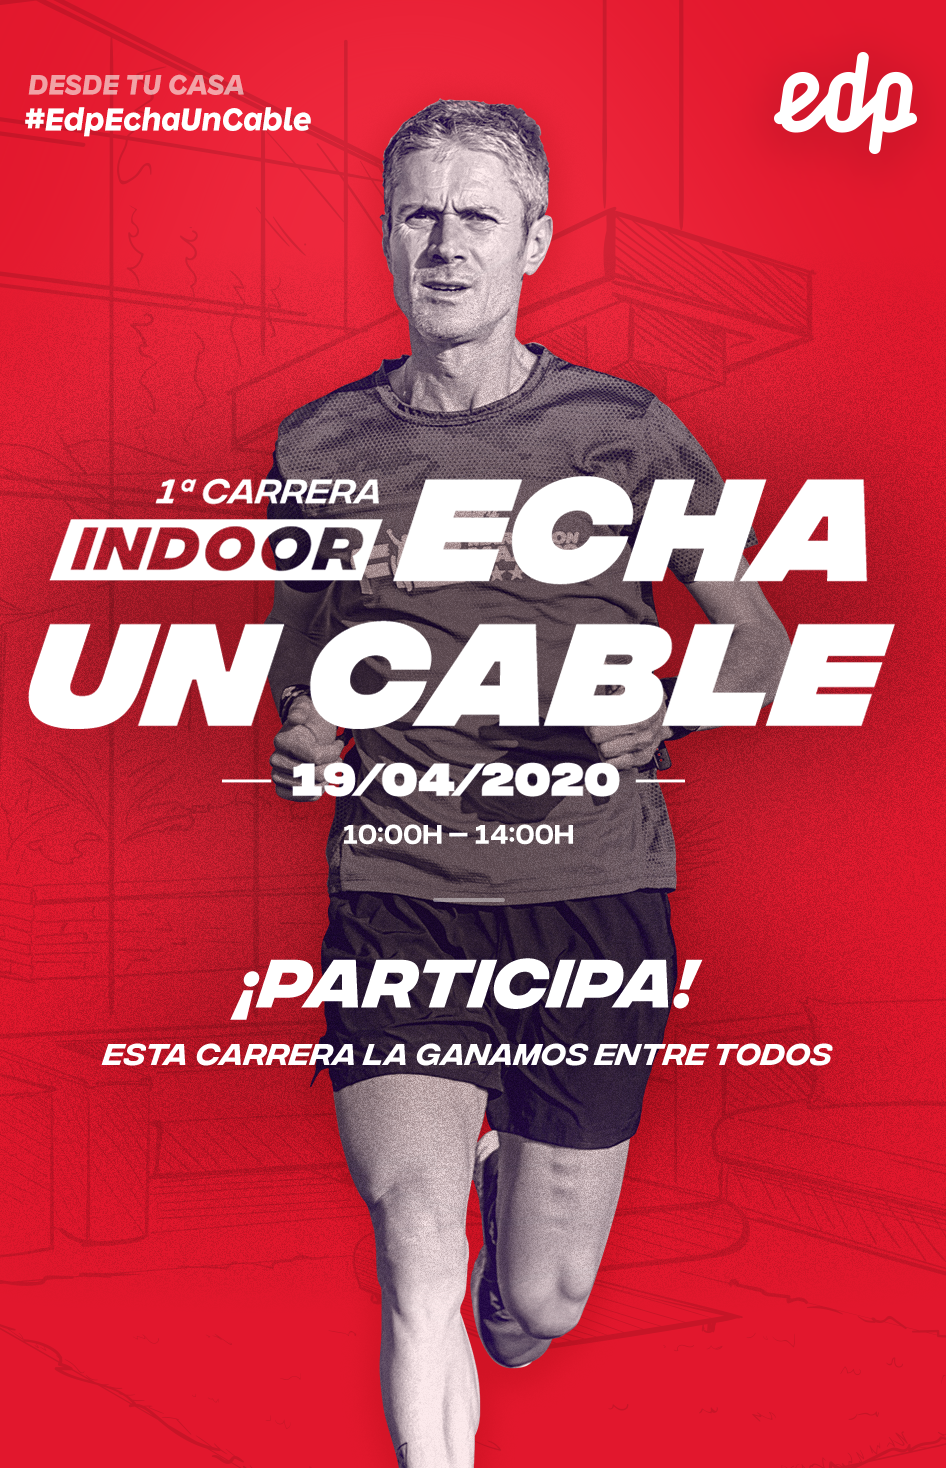 I primera carrera Indoor solidaria #EDPEchaUnCable